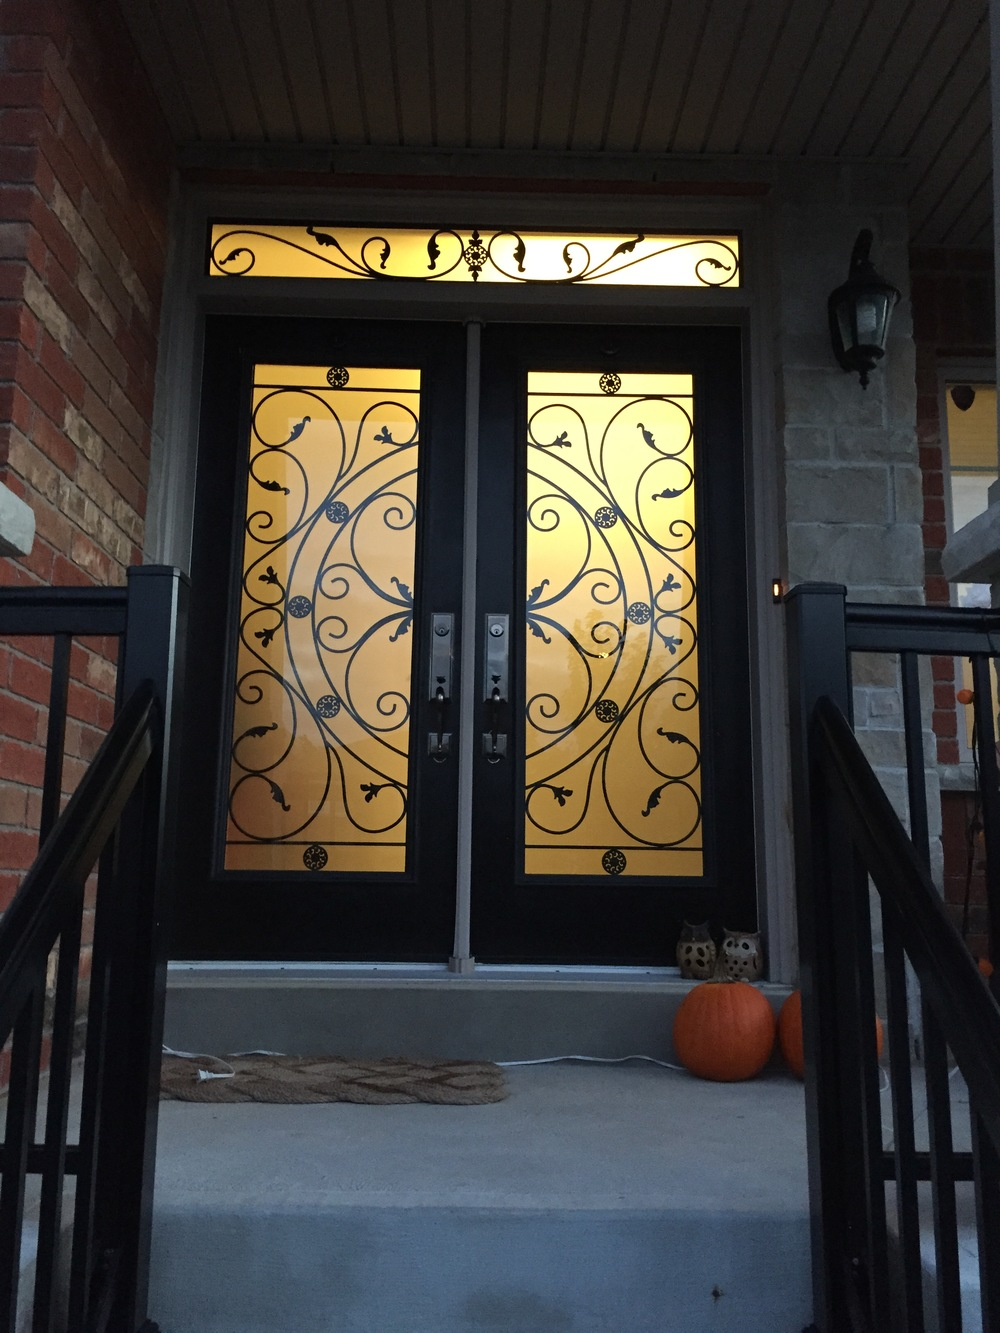 Campbellsford-Wrought-Iron-Glass-Door-Inserts-Richmond-Hill-Ontario